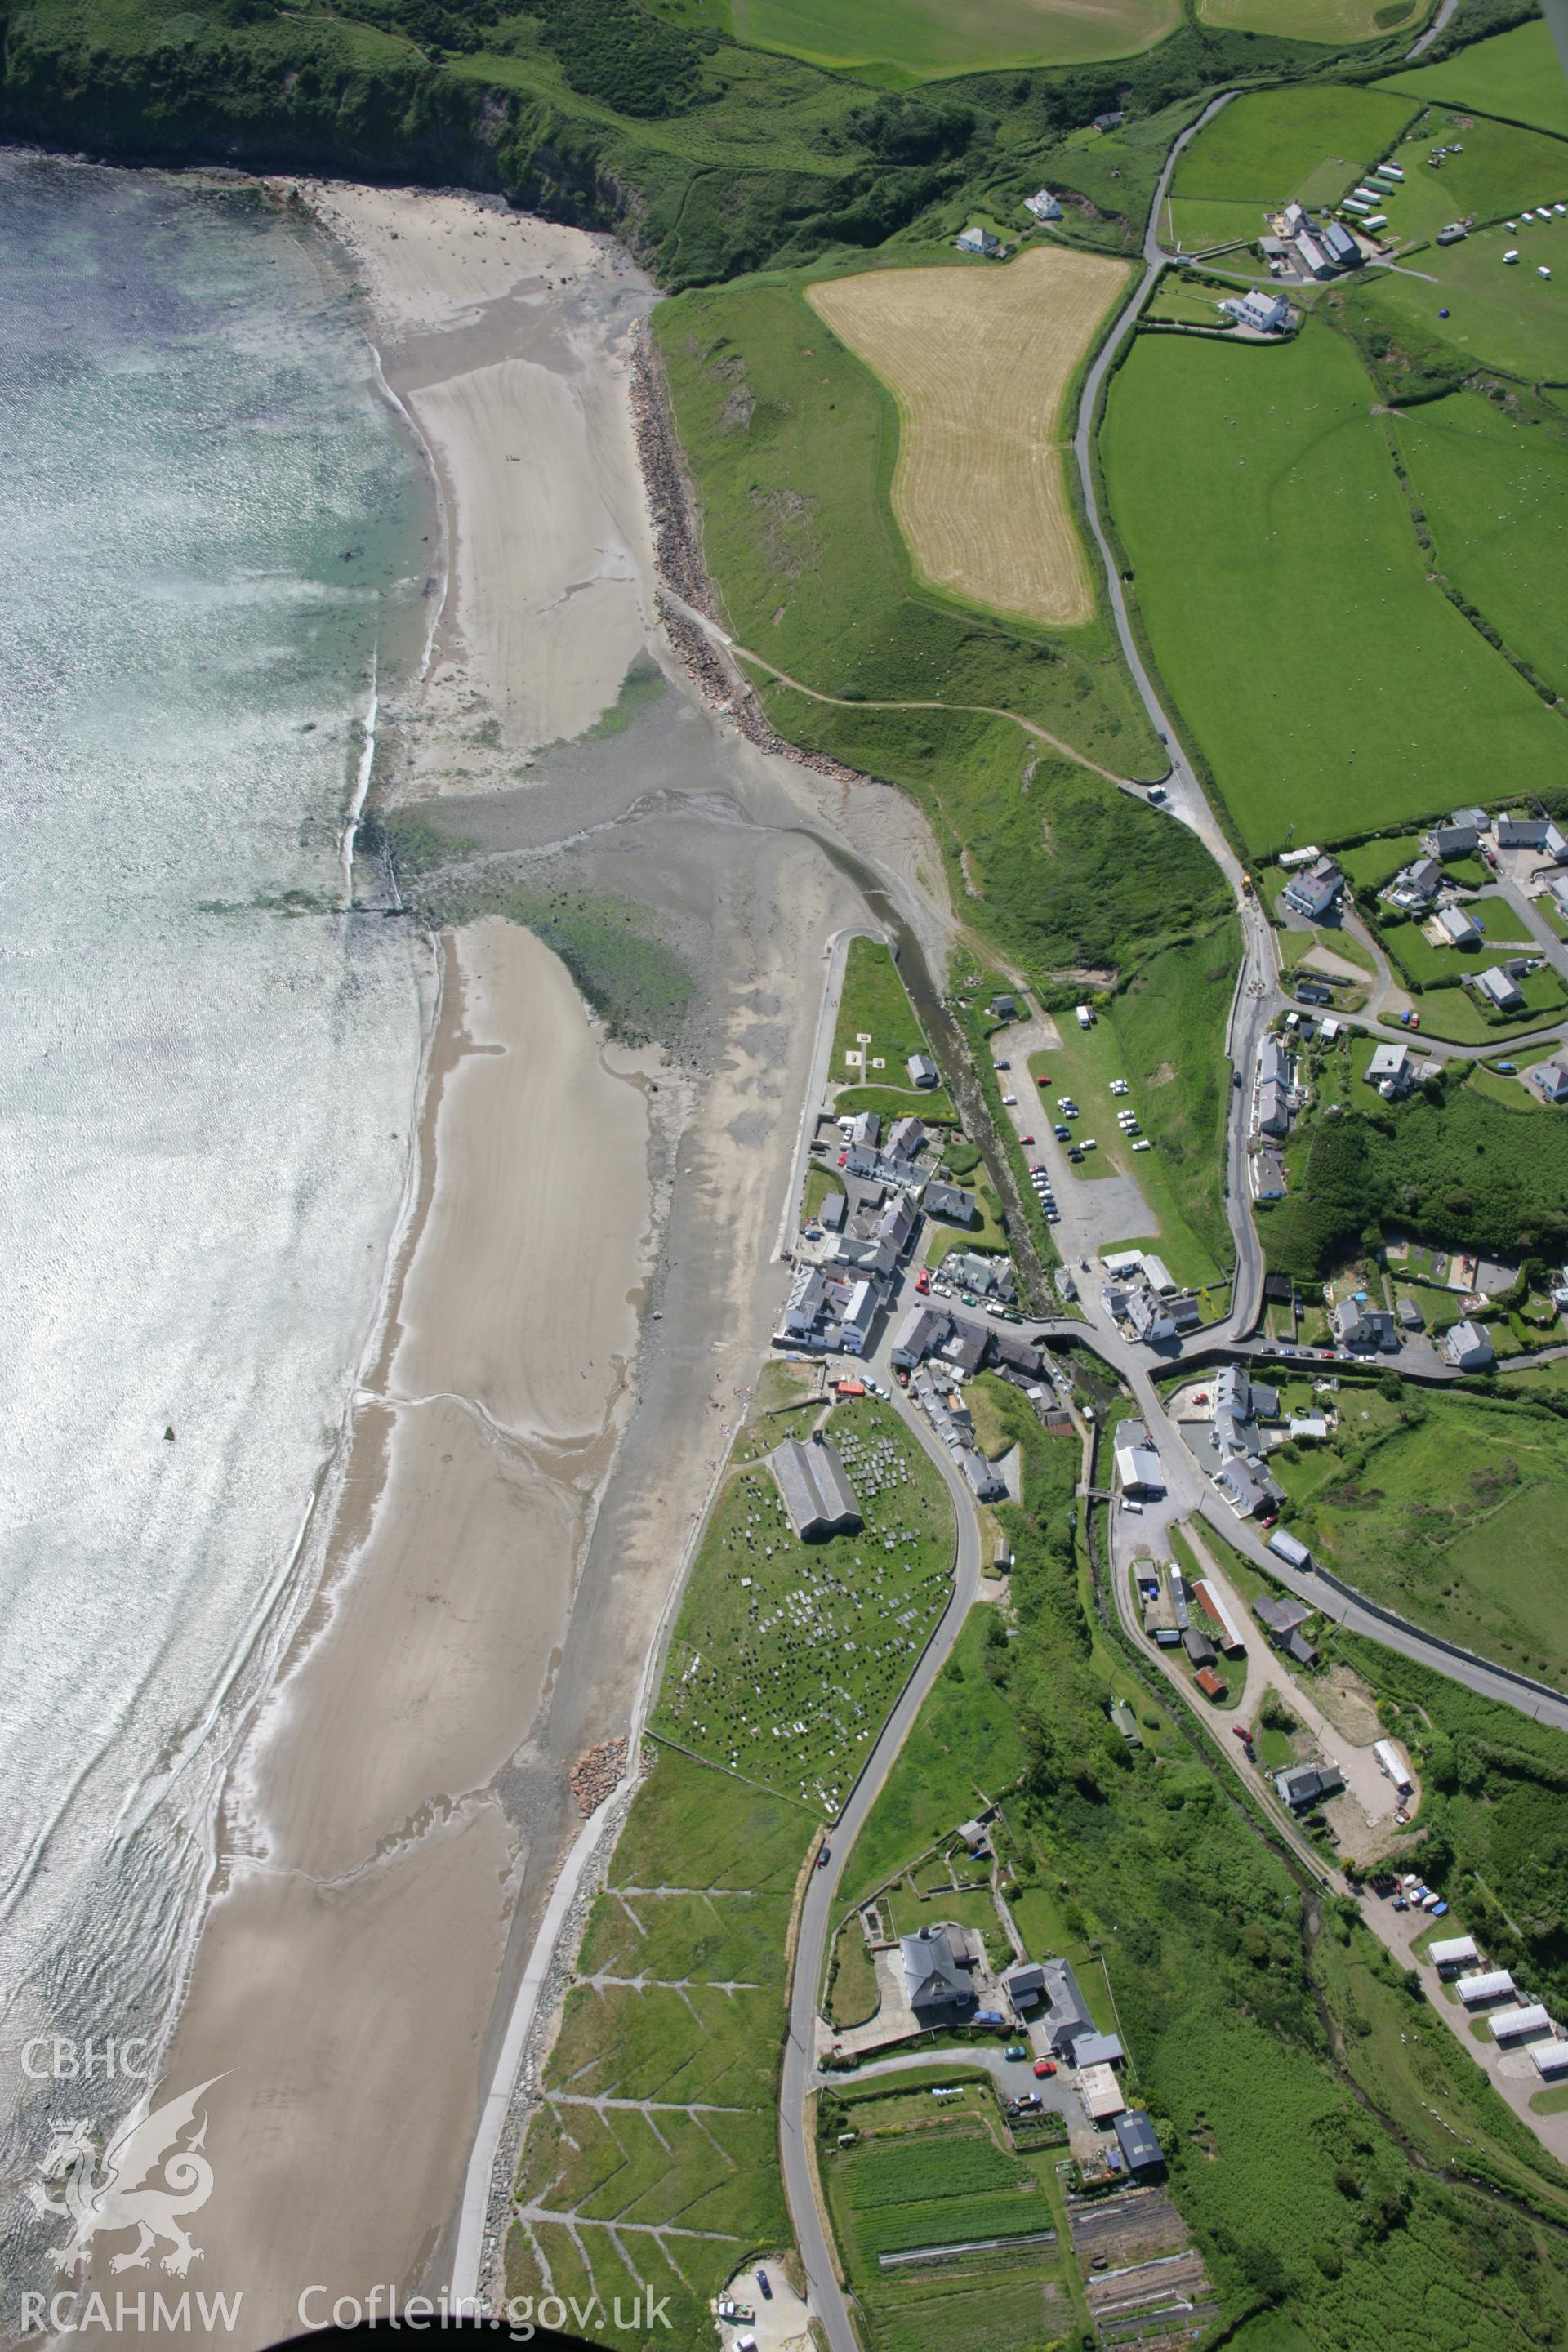 RCAHMW colour oblique aerial photograph of Aberdaron from the east. Taken on 14 June 2006 by Toby Driver.